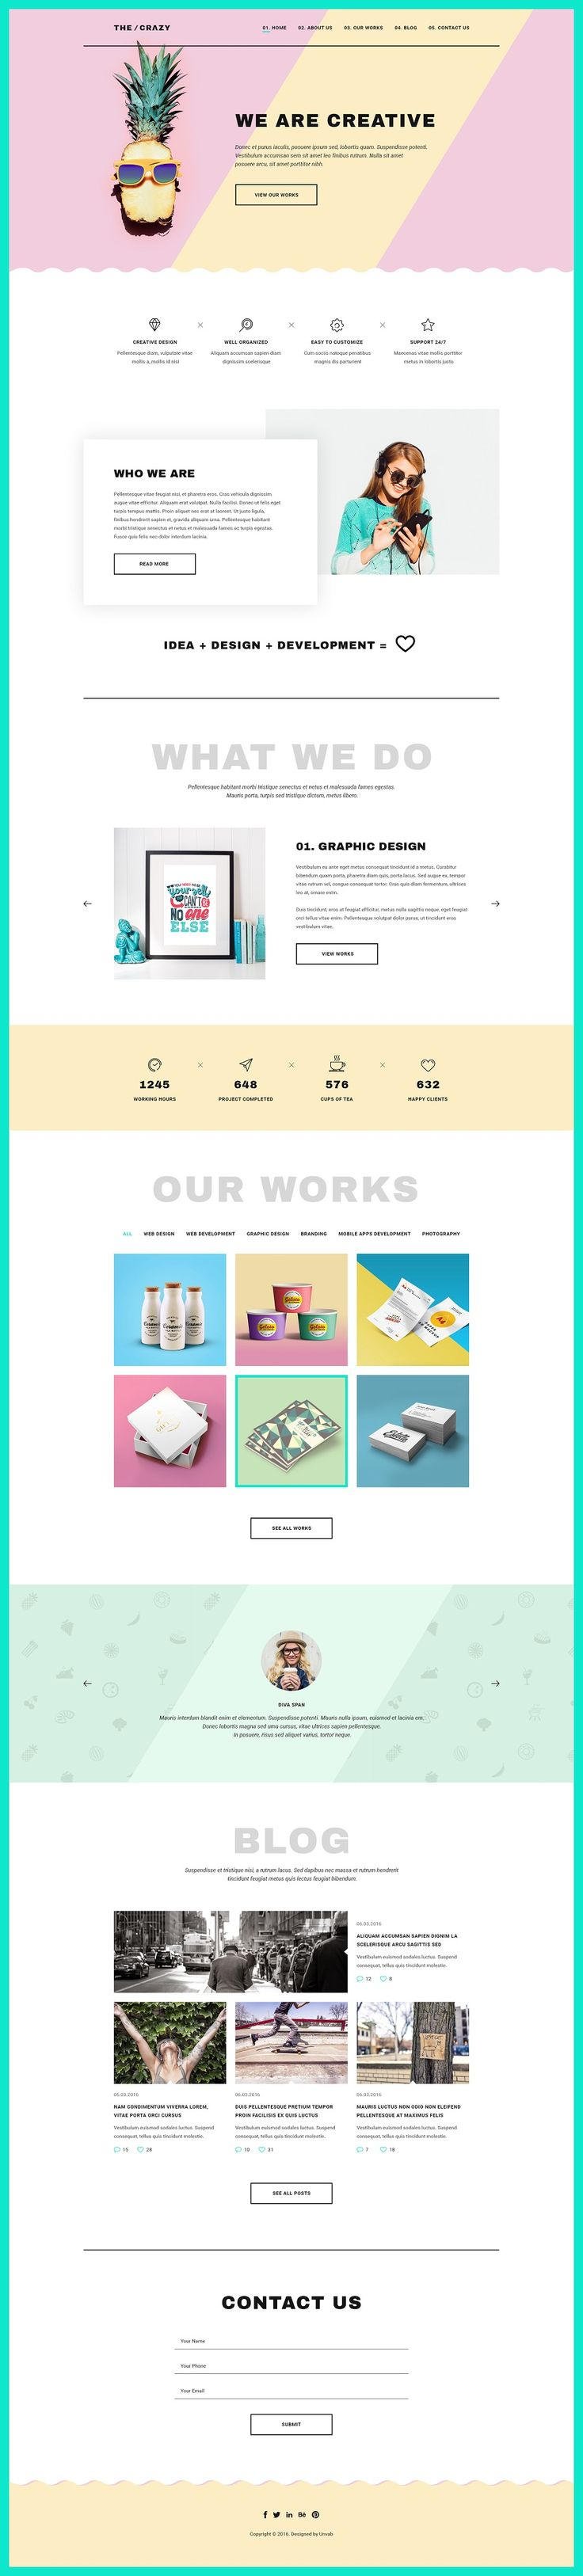 366 best Web Templates images on Pinterest | Website designs, Design ...